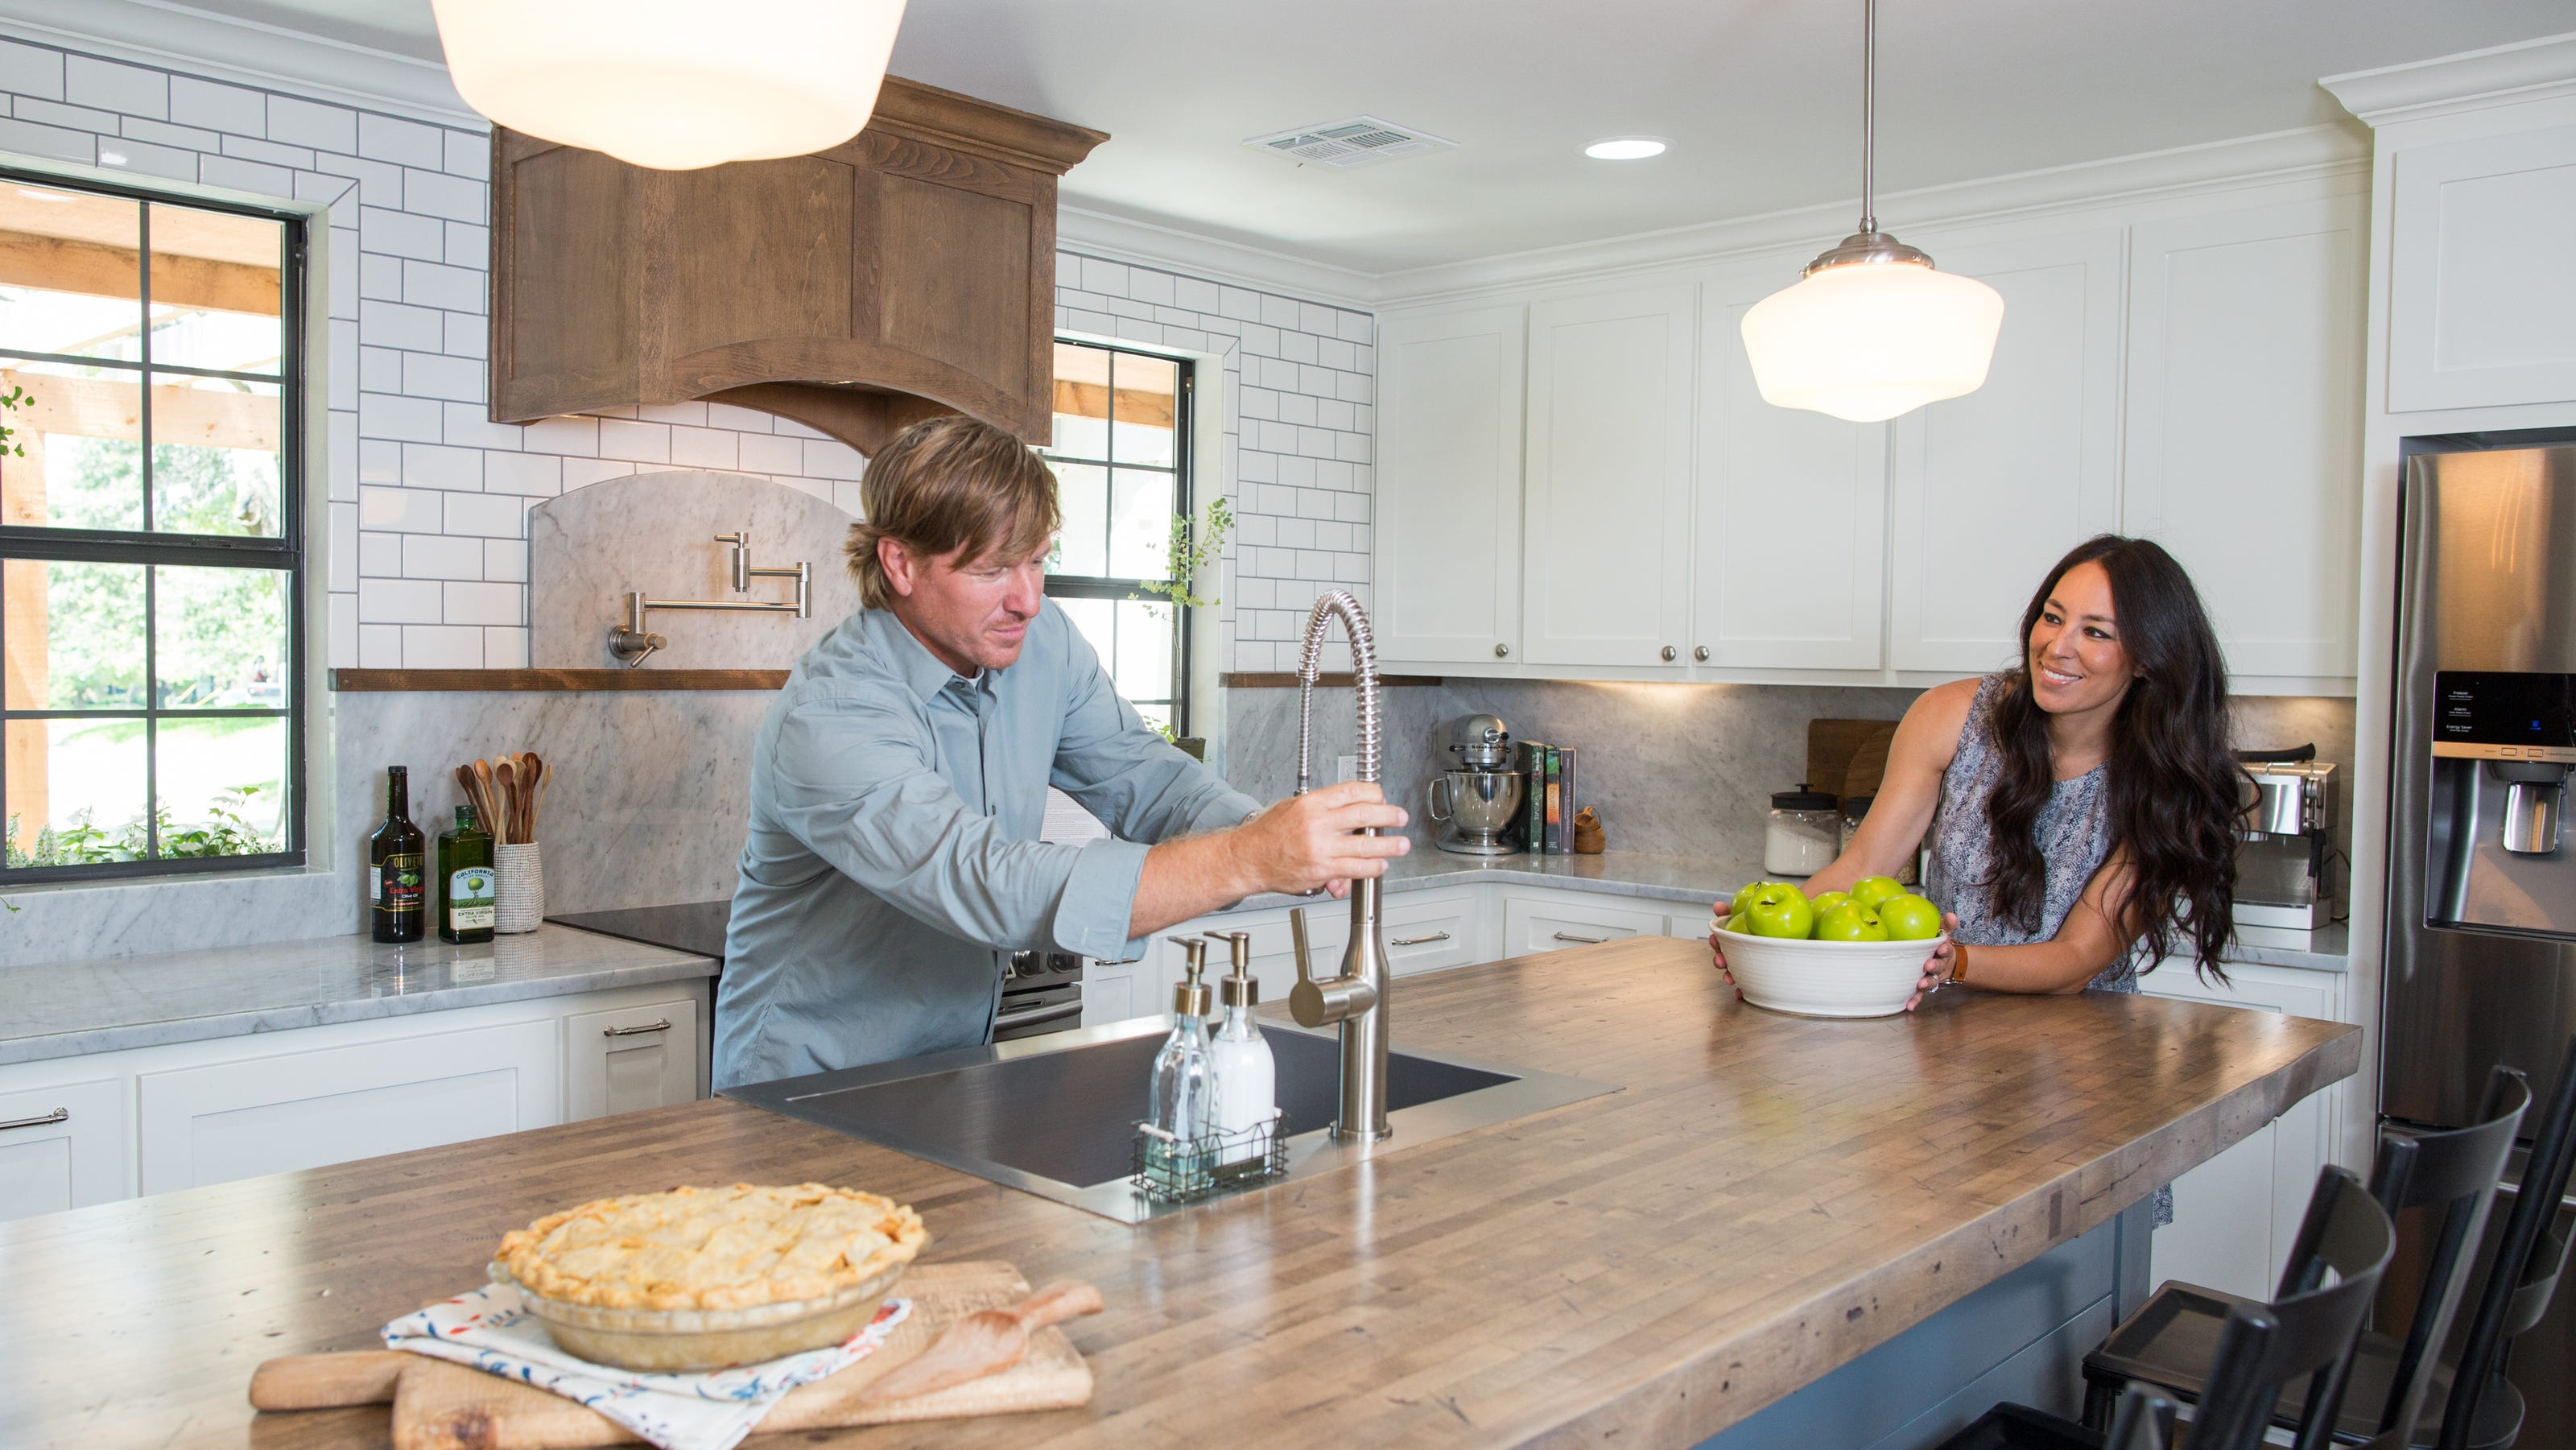 Chips Et Joanna Gaines chip-joanna-gaines-fixer-upper-fake